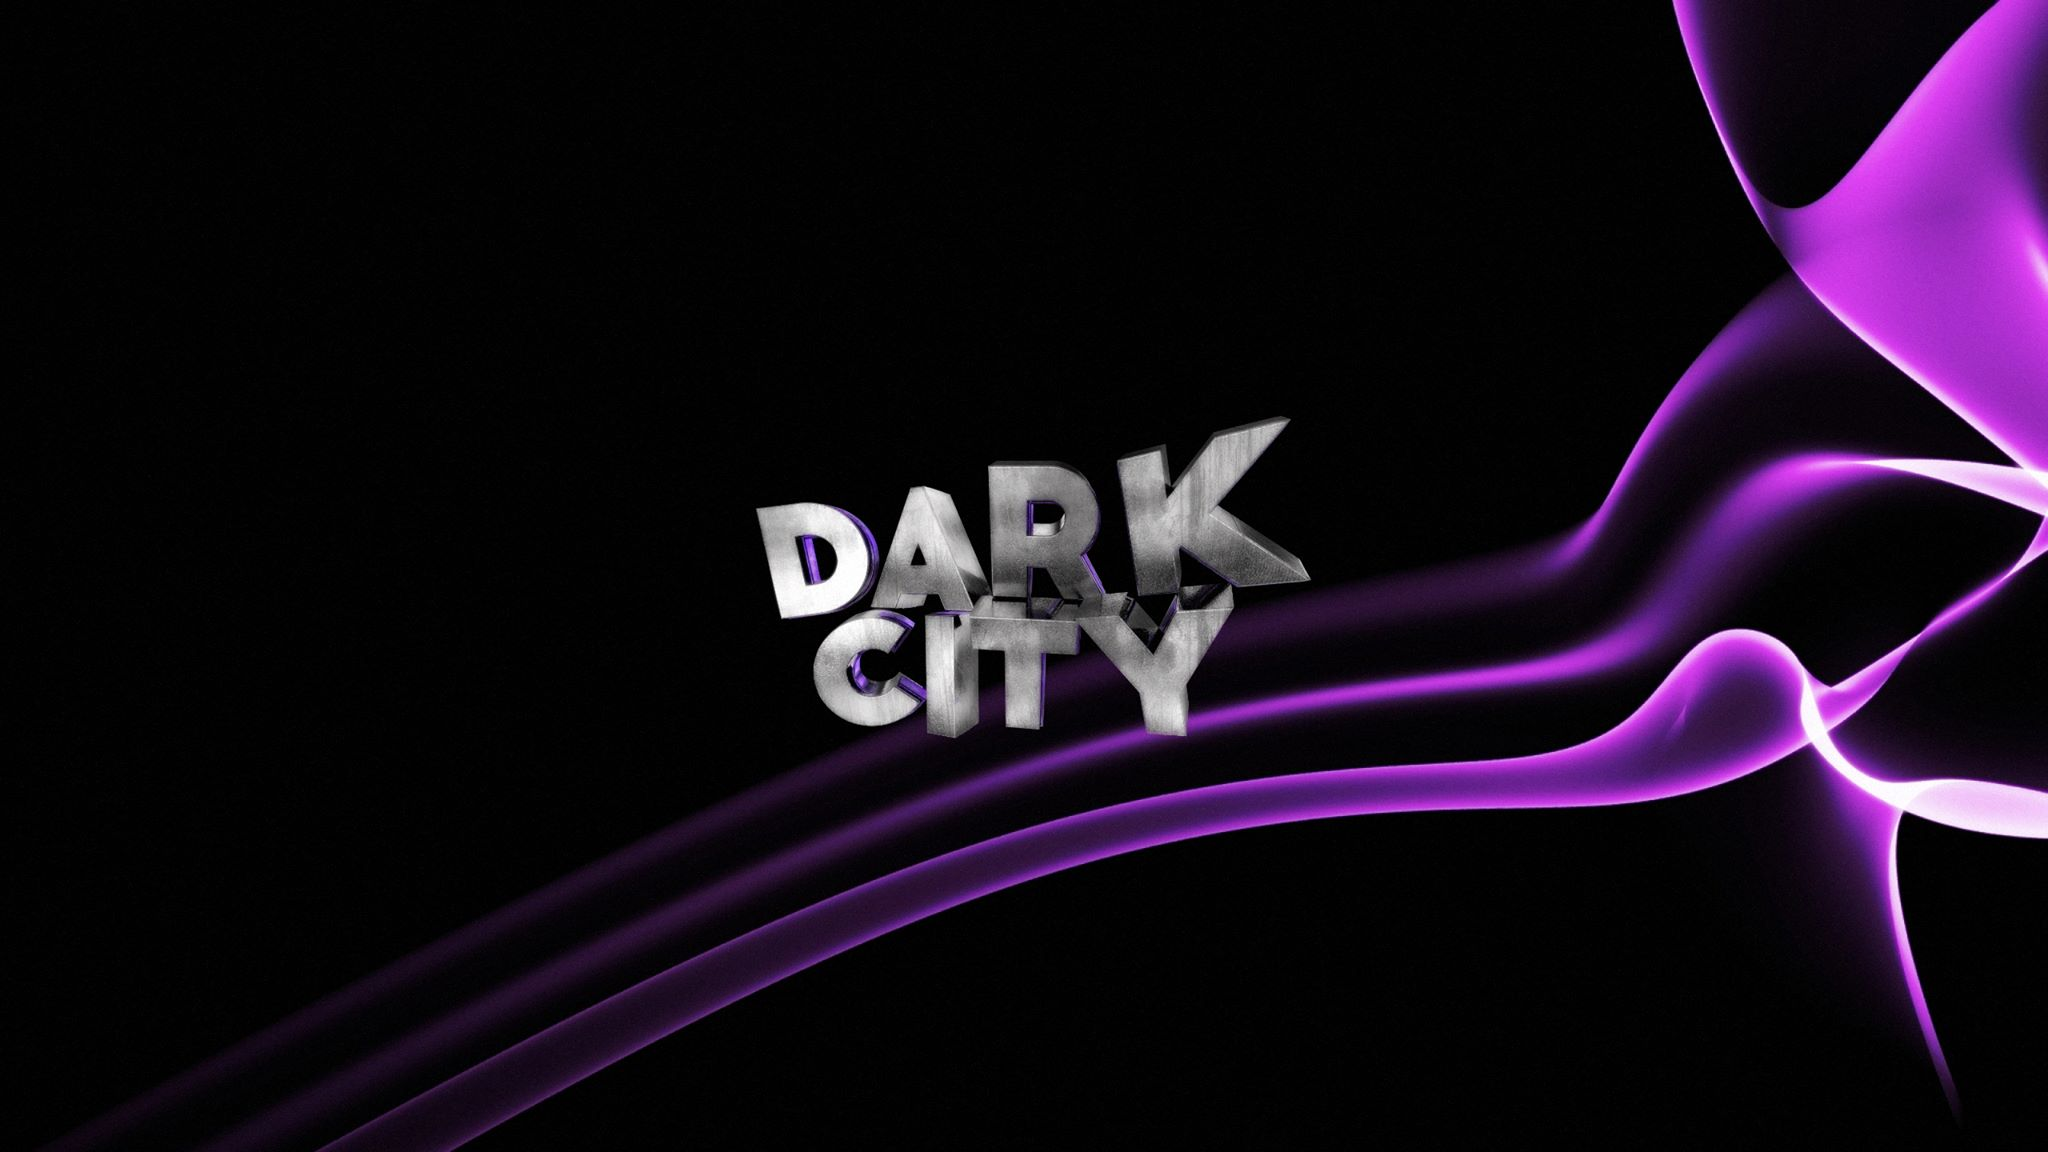 Speed: Dark City